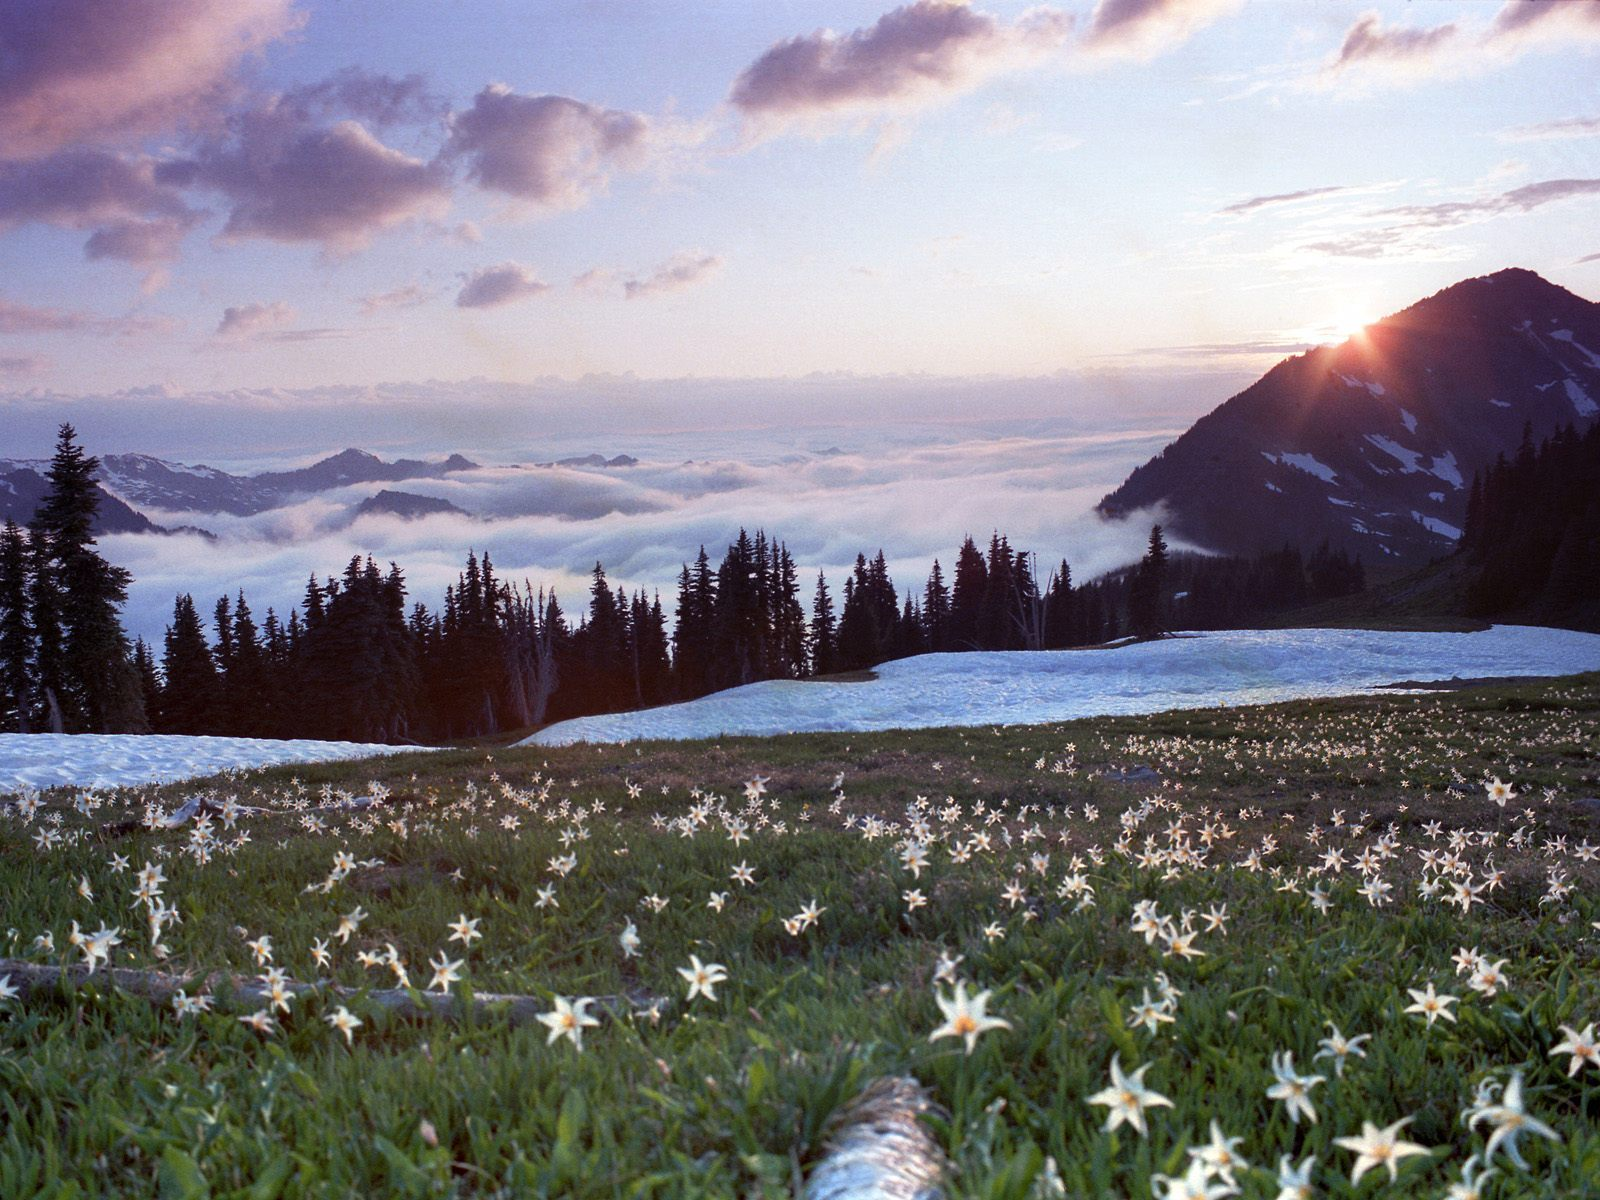 22929 download wallpaper Plants, Landscape, Flowers, Mountains, Snow screensavers and pictures for free